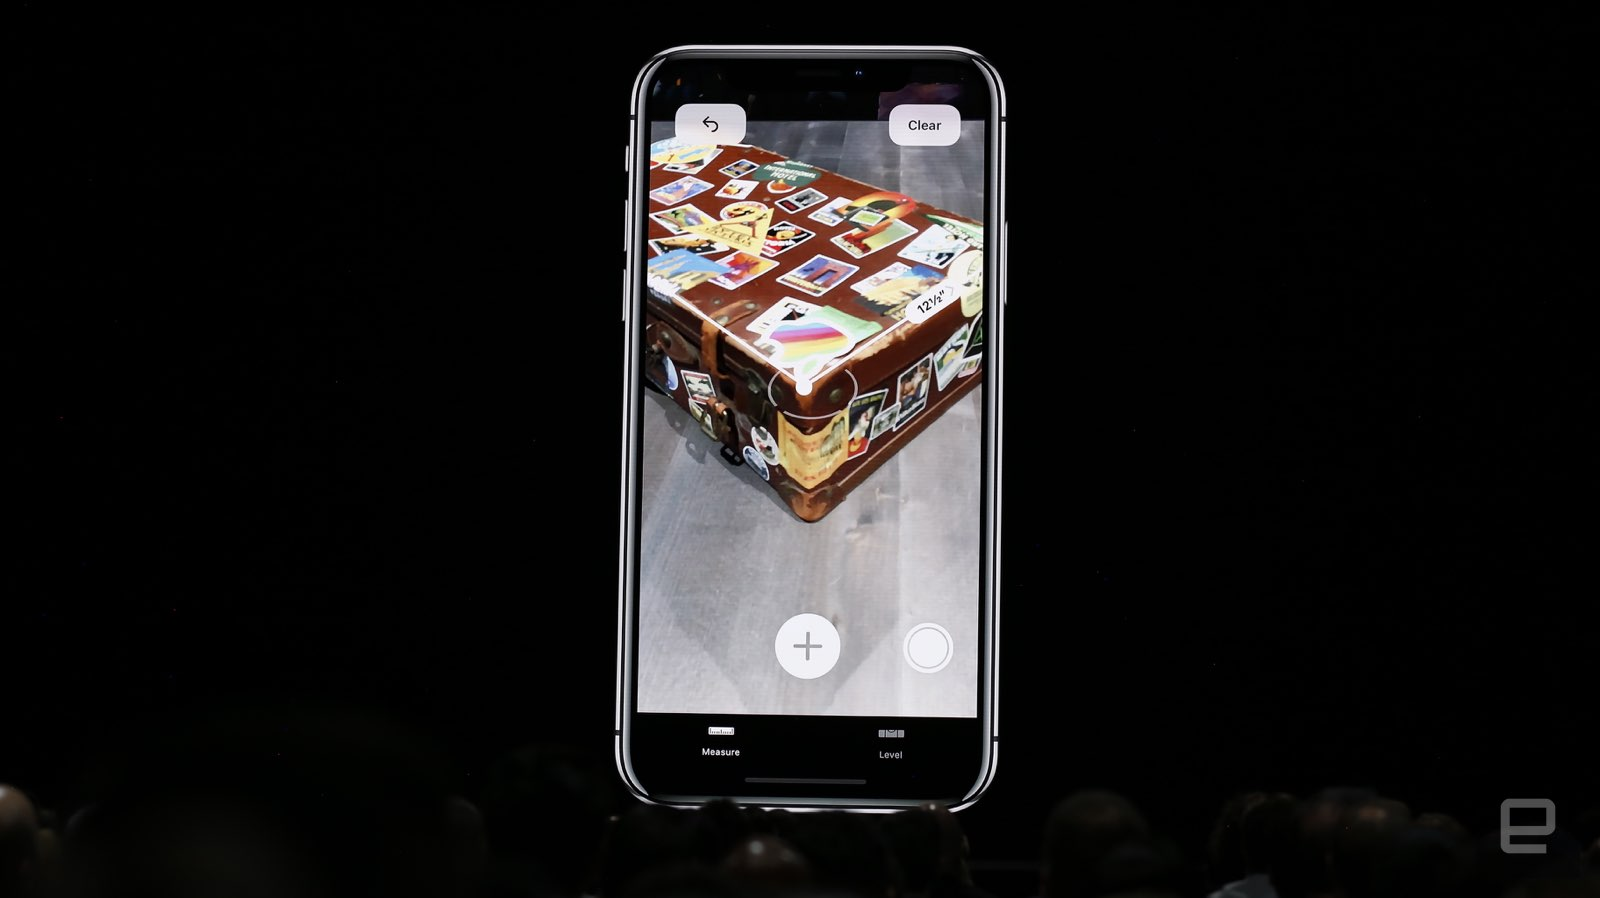 WWDC 18: iOS 12 Enhances Augmented Reality With AR Kit 2